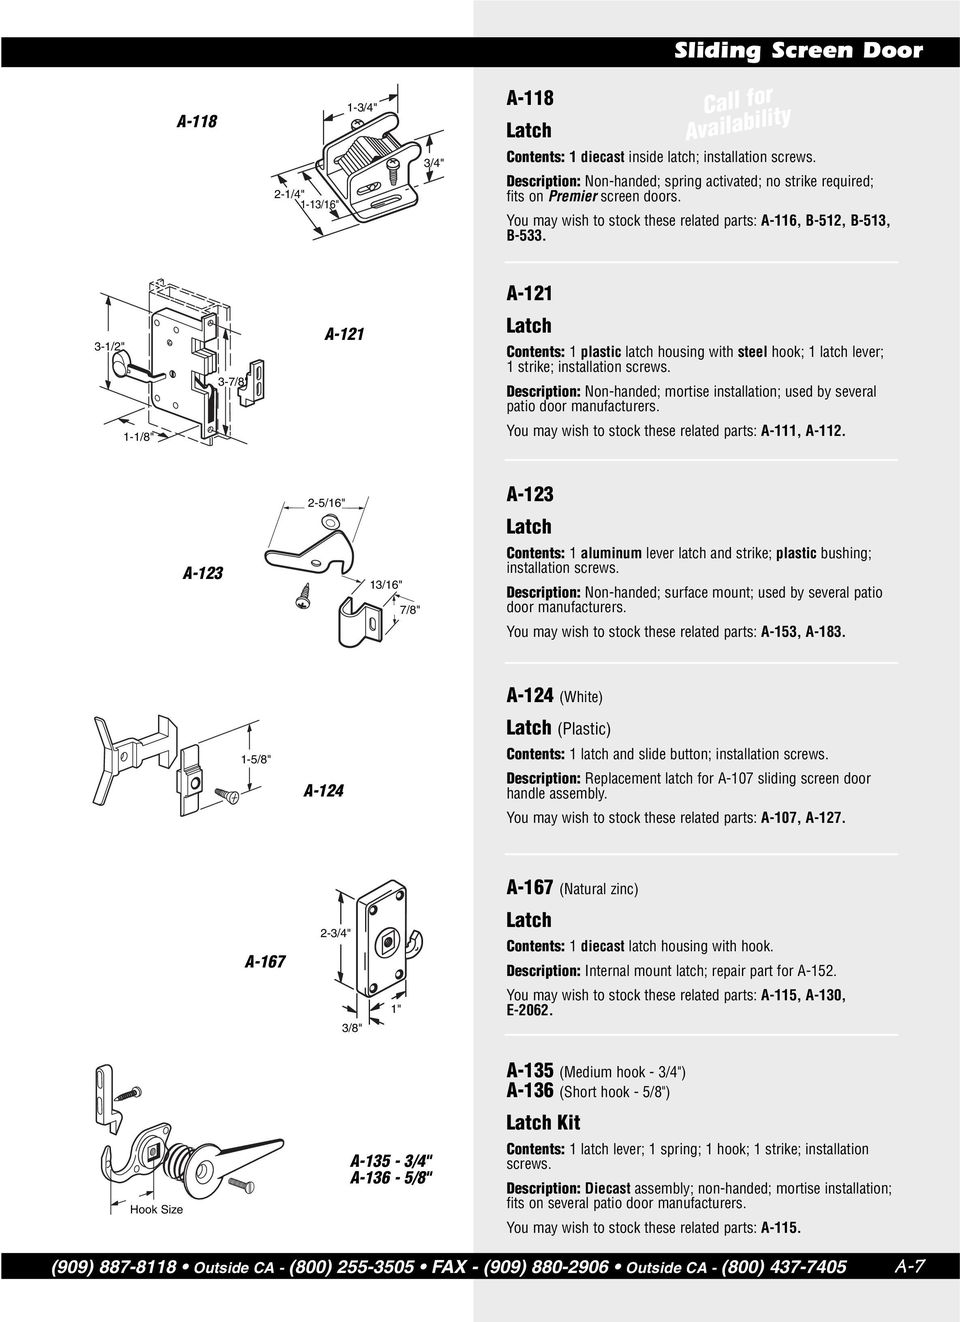 A-121 3-3- A-121 Contents: 1 plastic latch housing with steel hook; 1 latch lever; 1 strike; Description: Non-handed; mortise installation; used by several patio door manufacturers.